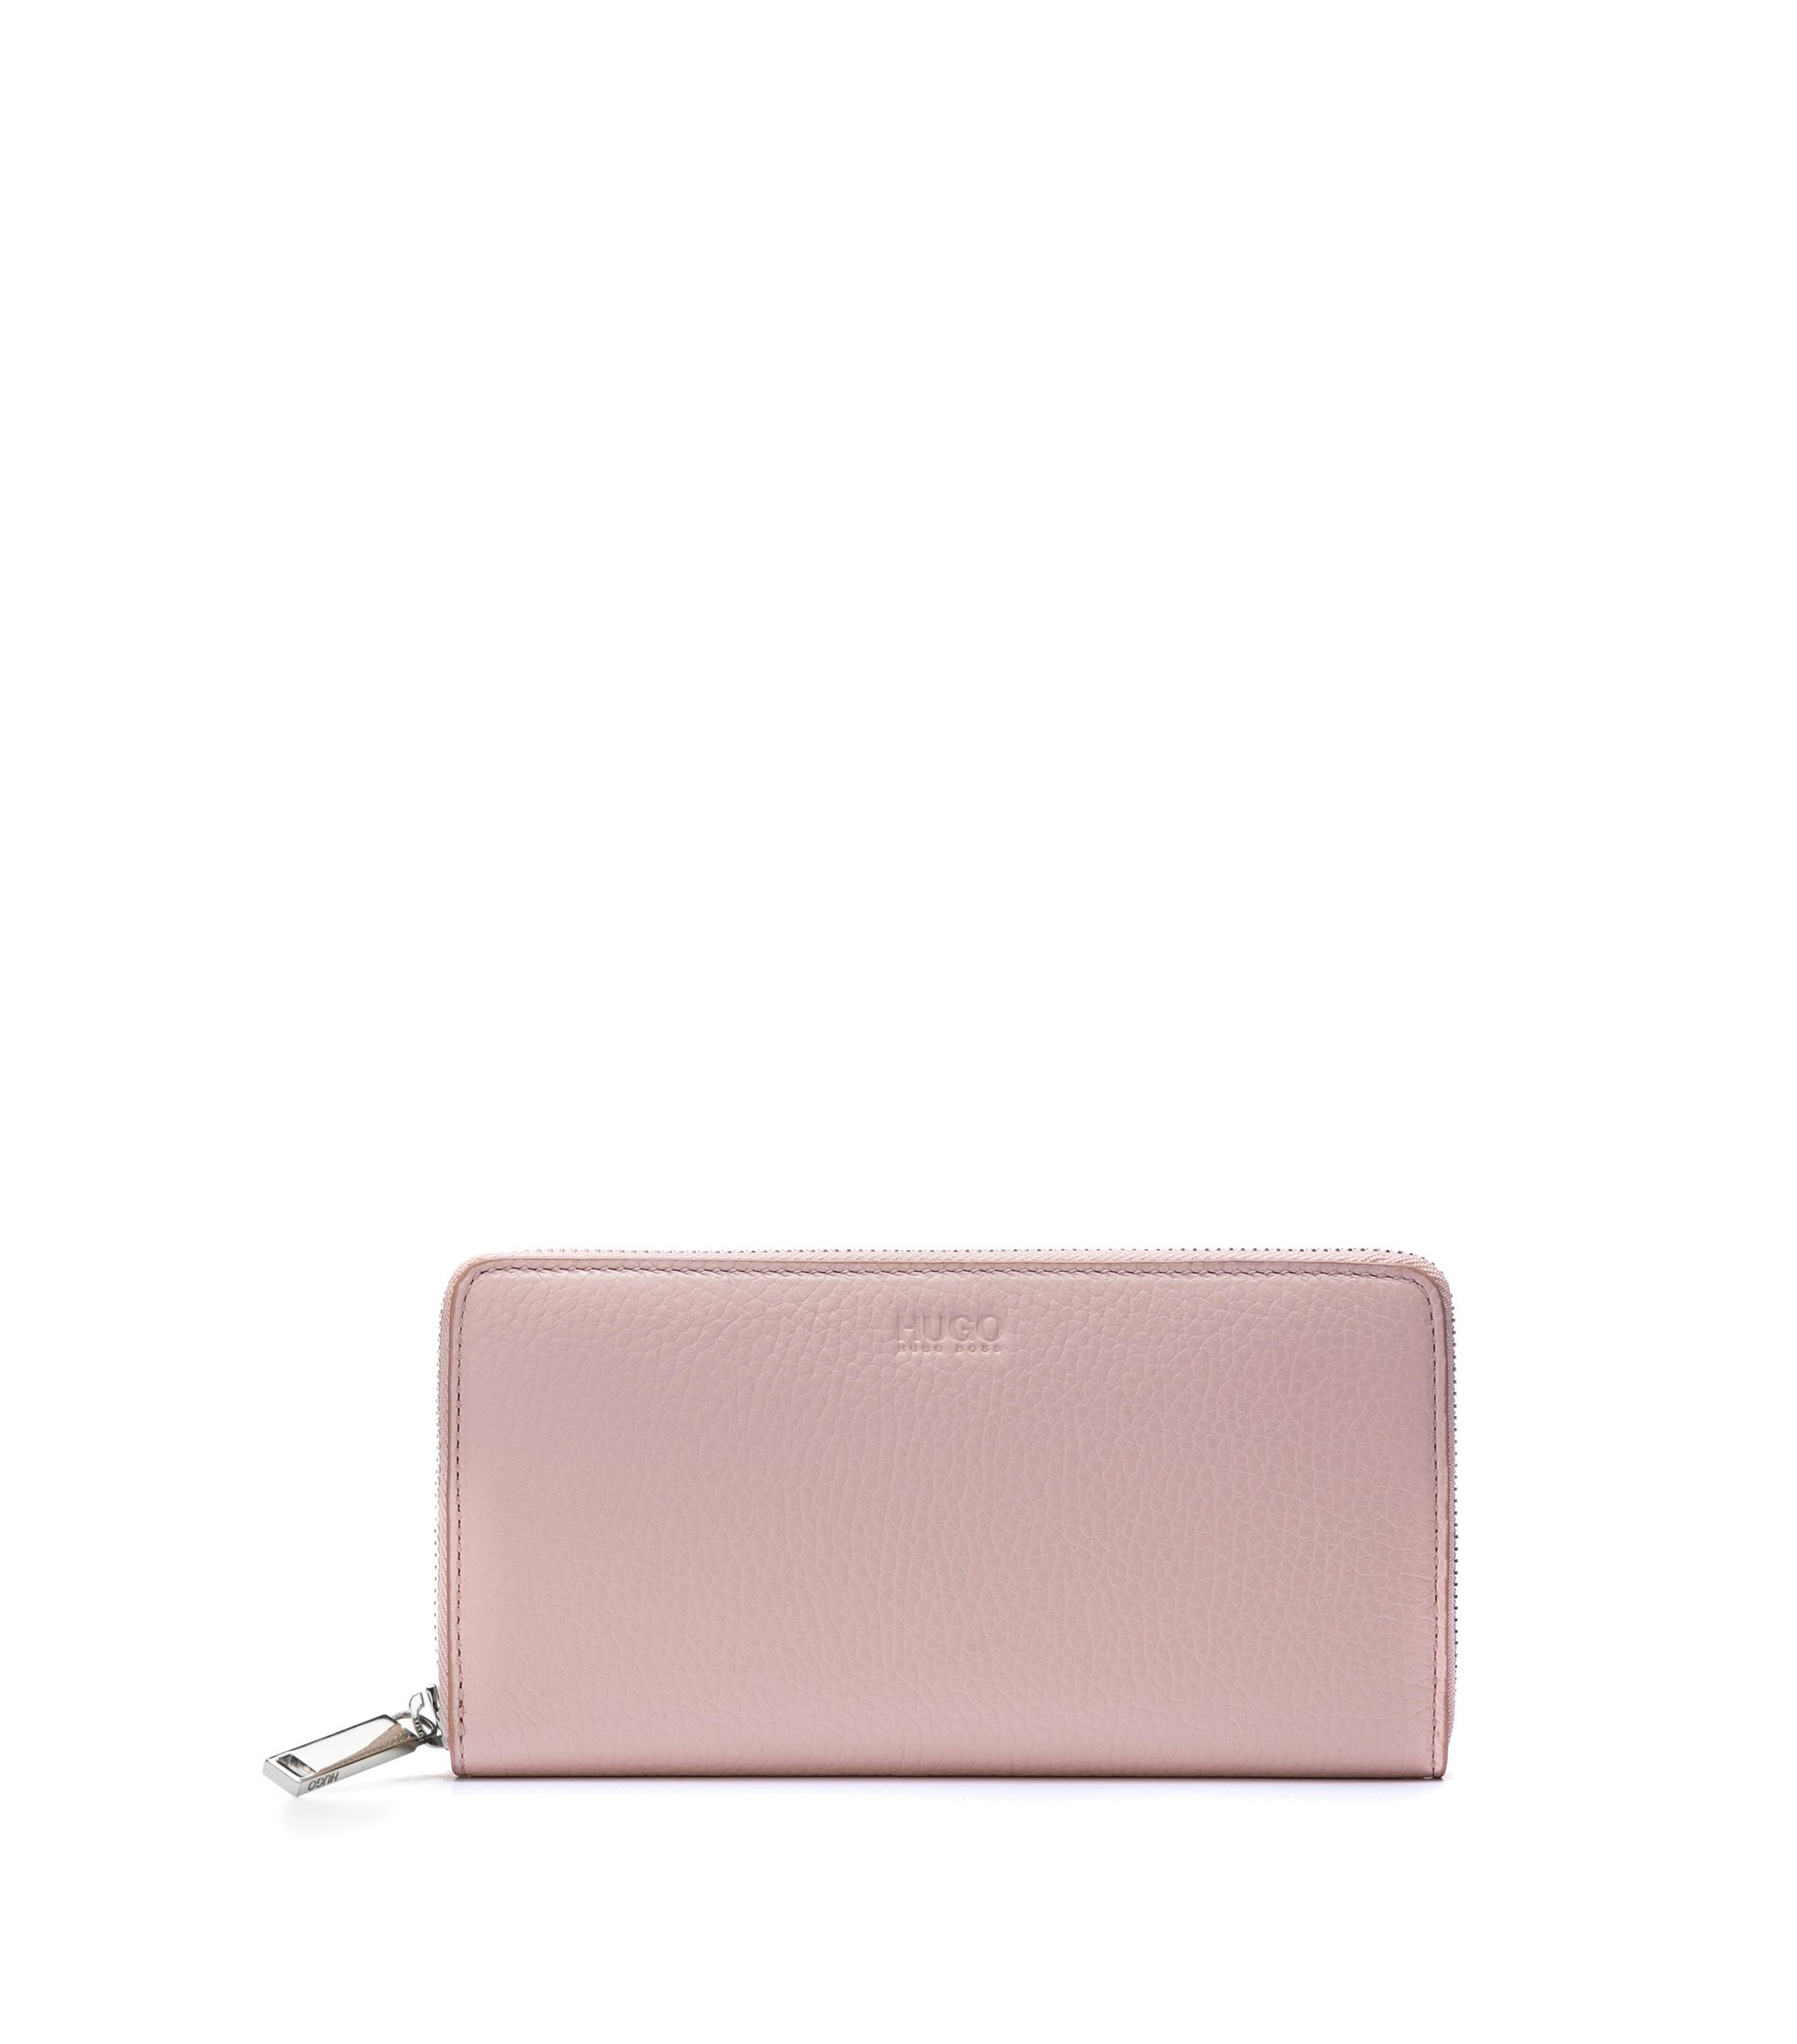 Zip-around wallet in grained leather, light pink